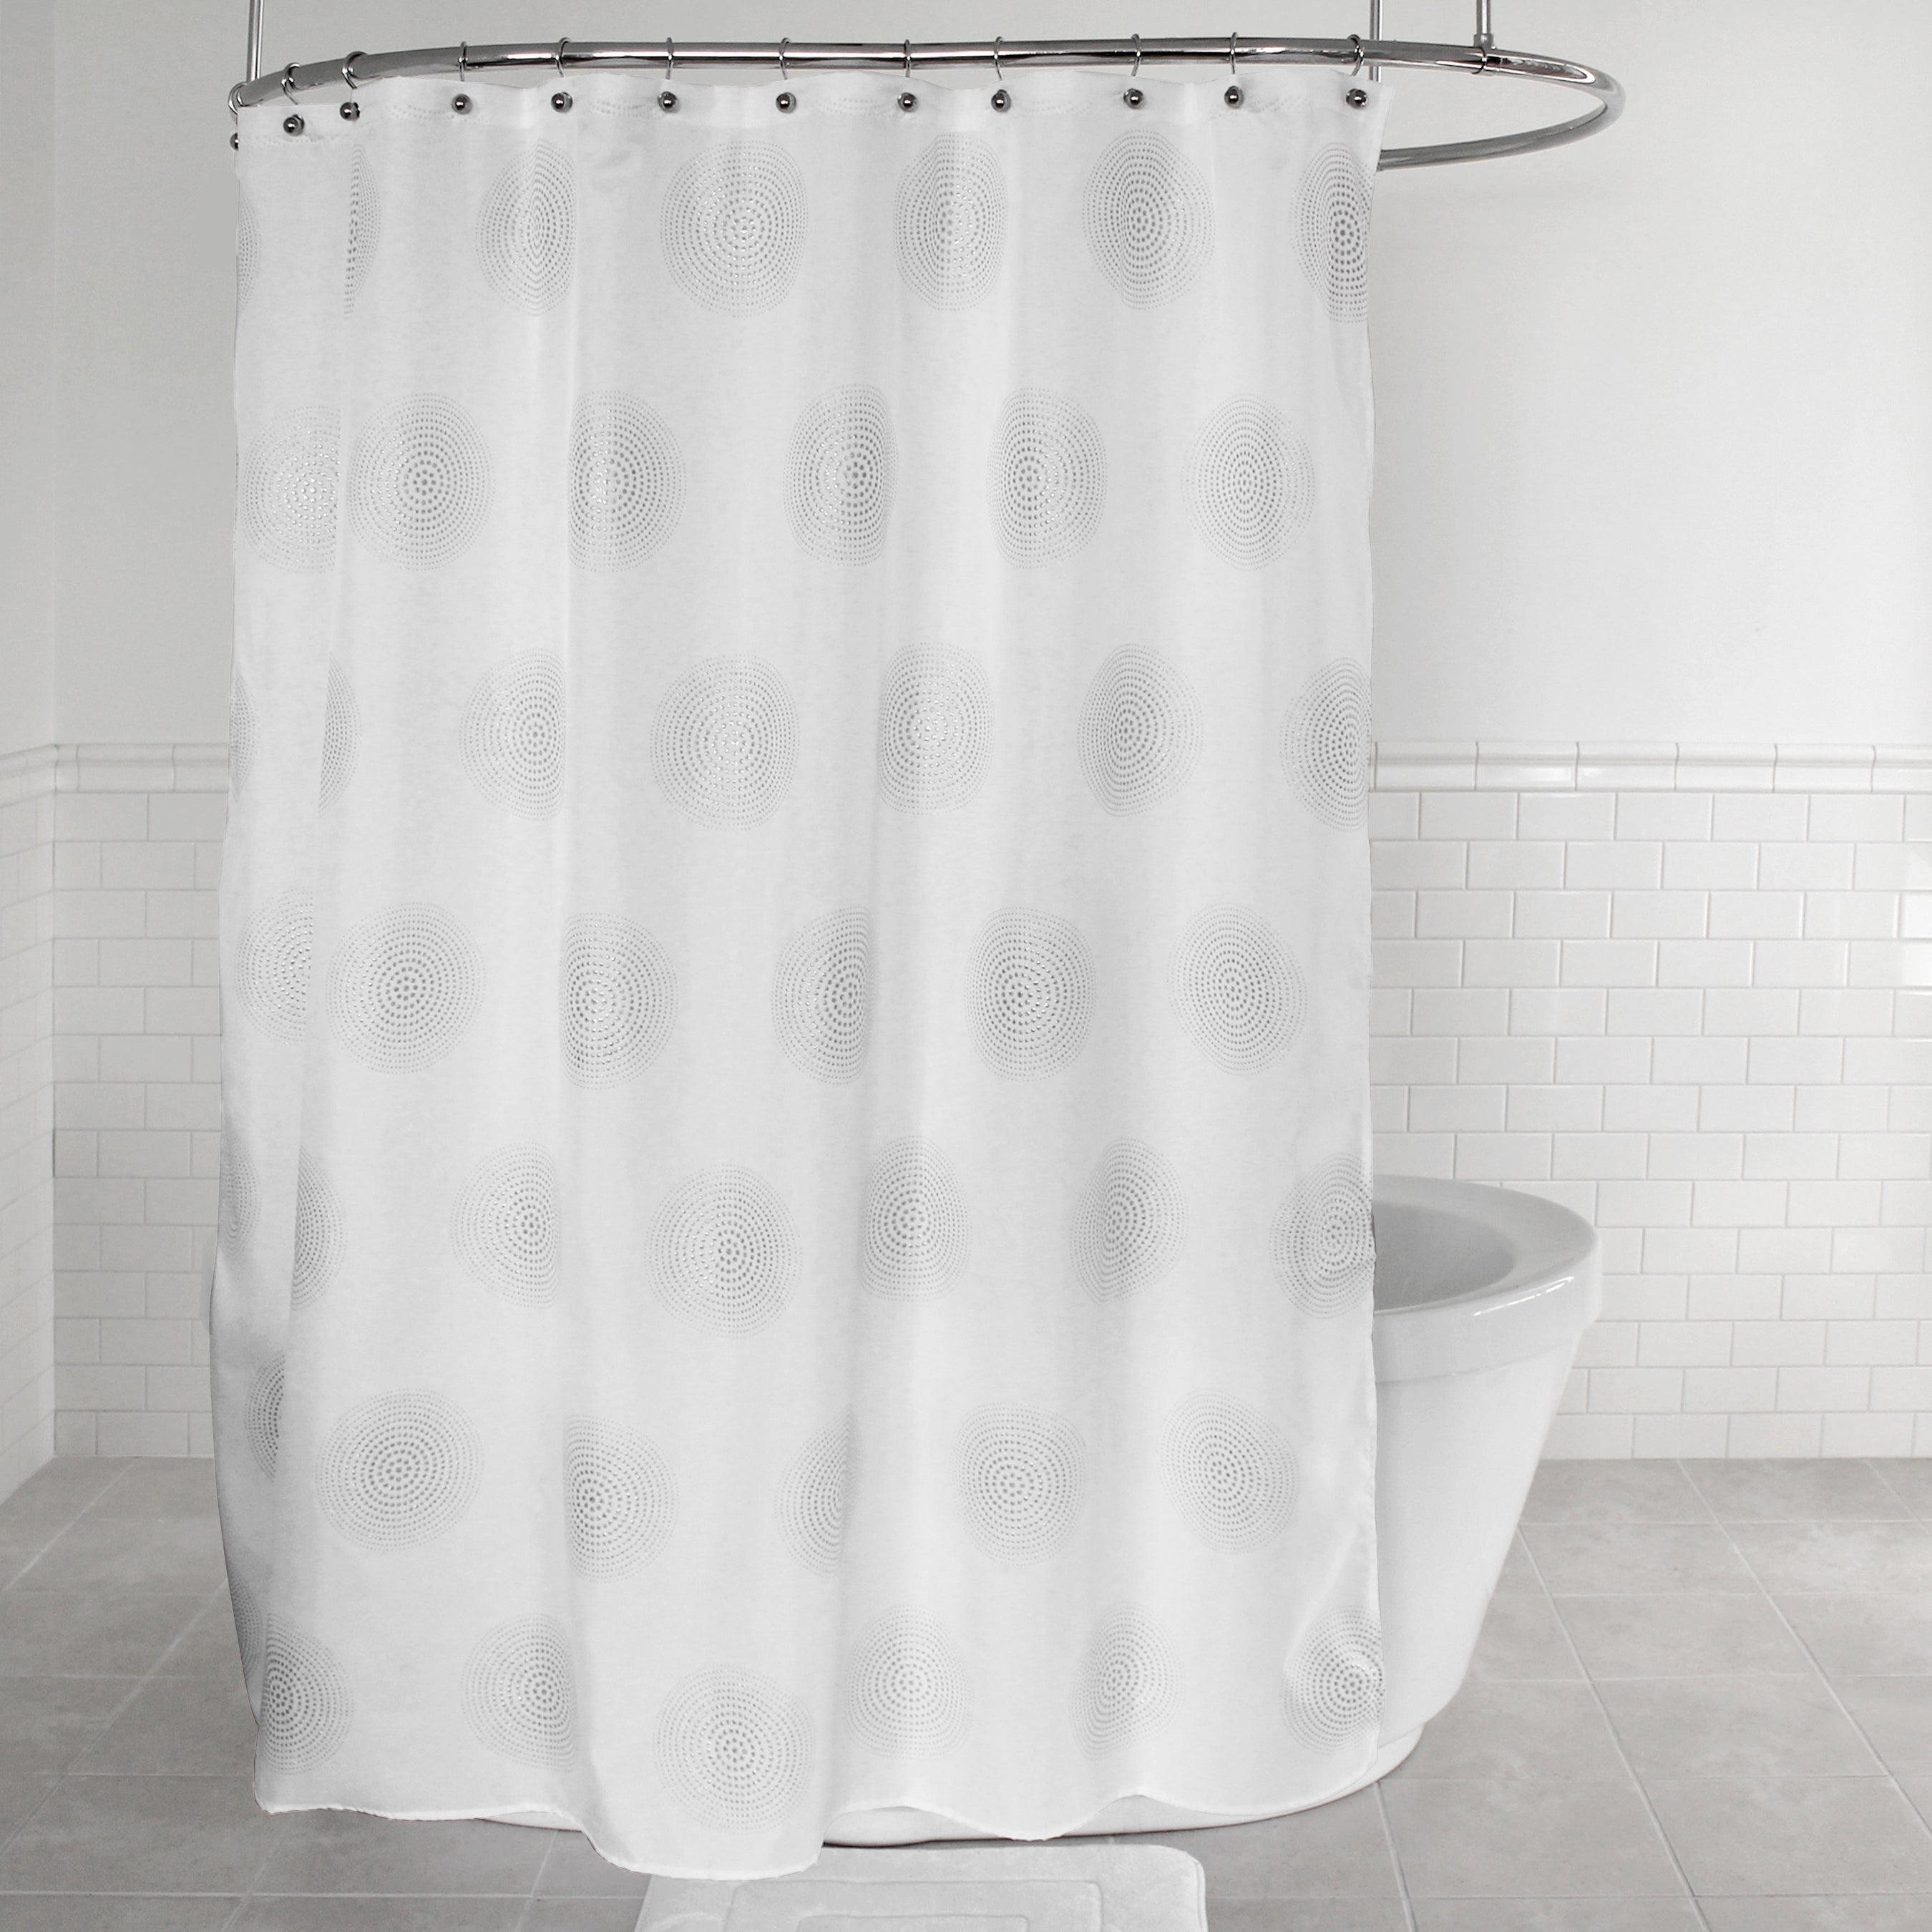 Shop Splash Home Radiant Polyester Fabric Shower Curtain 70 X 72 White